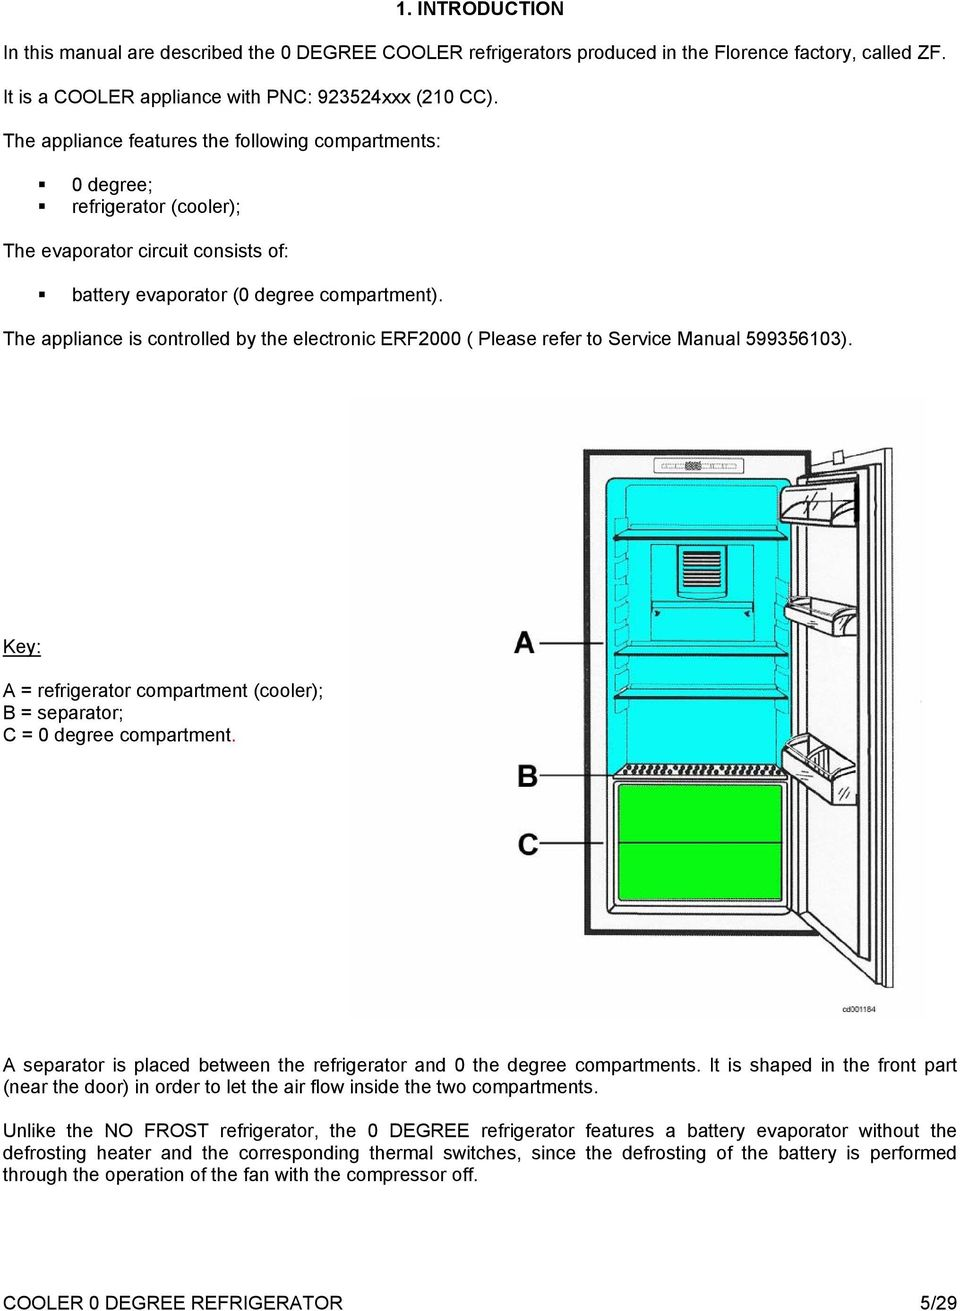 Service Manual Refrigeration Pdf Refrigerator Cooling Schematic The Appliance Is Controlled By Electronic Erf2000 Please Refer To 599356103